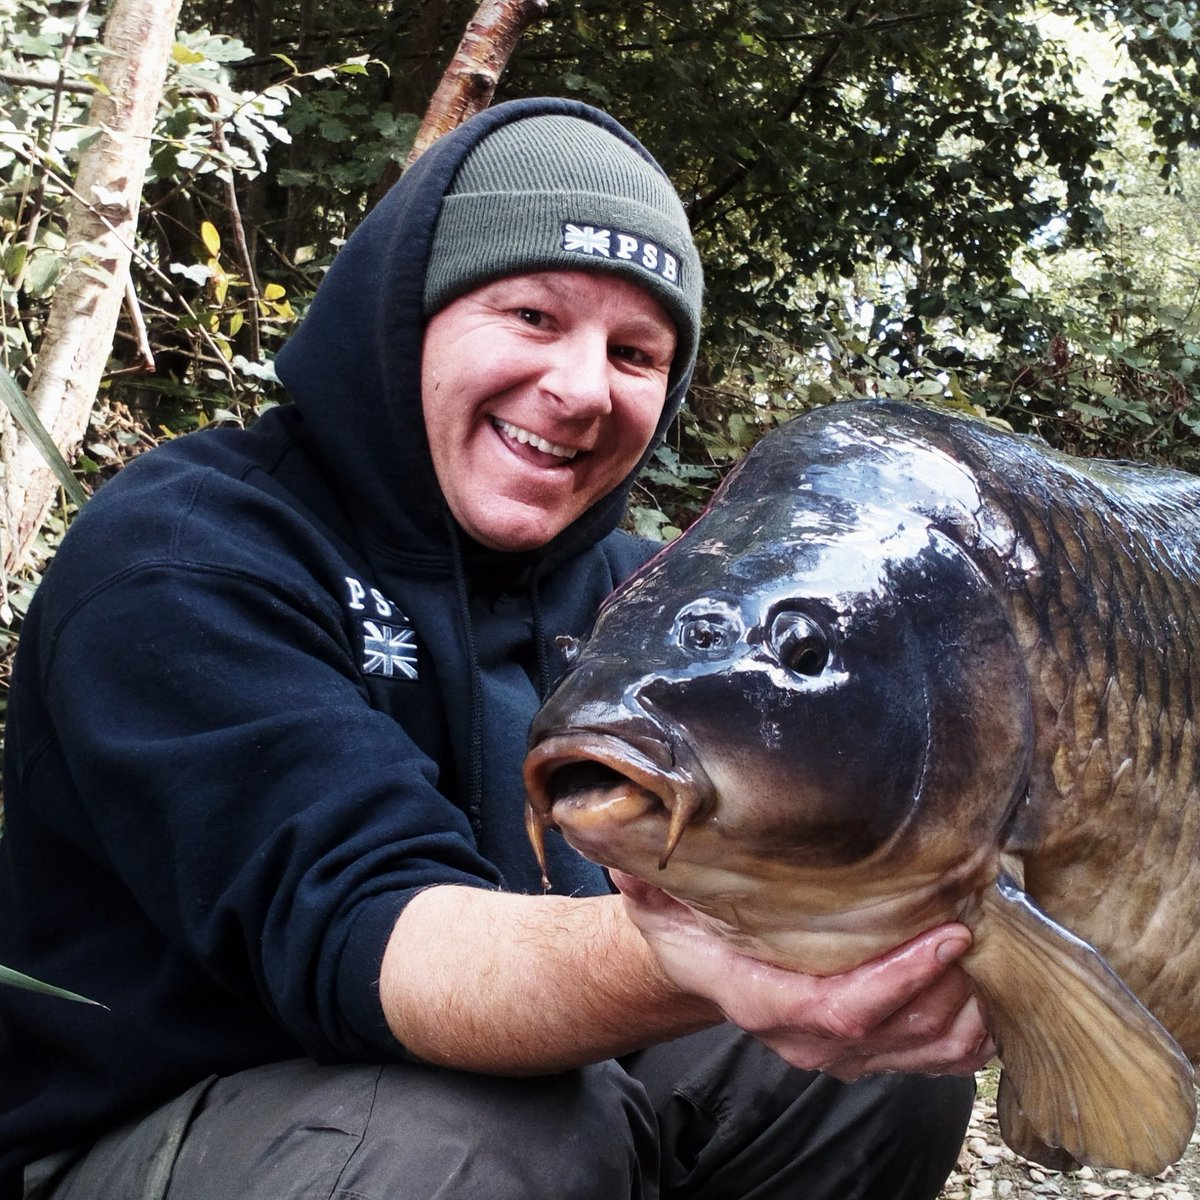 Be Lucky You Guys out there this Weekend!  #PSB #PukkaSquirrelBaits #CarpFishing #CarpAngling https: